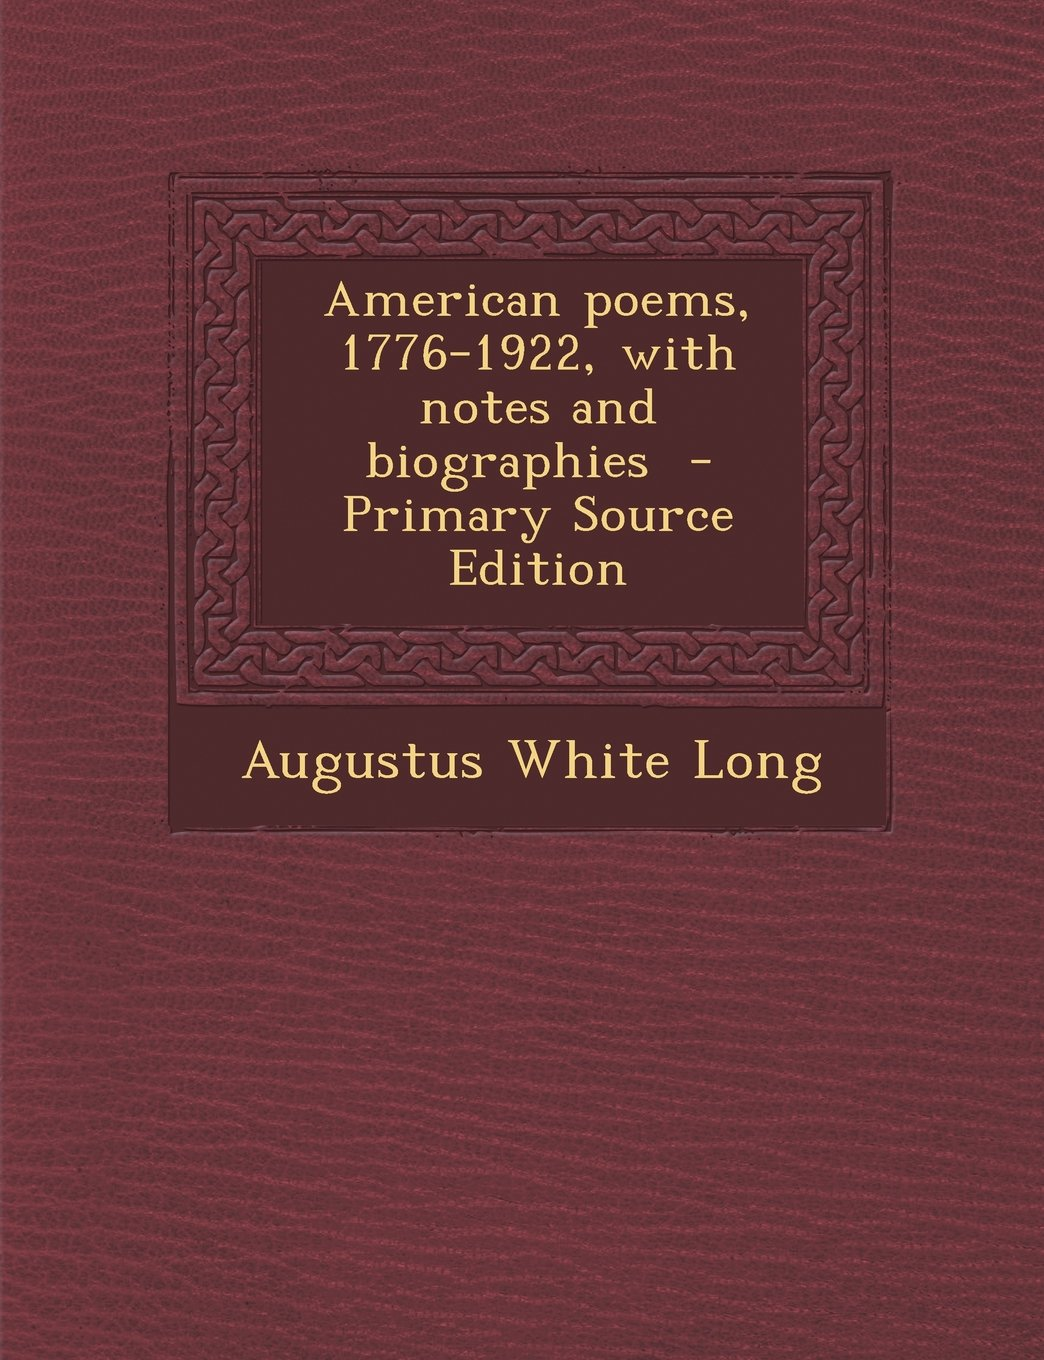 American poems, 1776-1922, with notes and biographies  - Primary Source Edition pdf